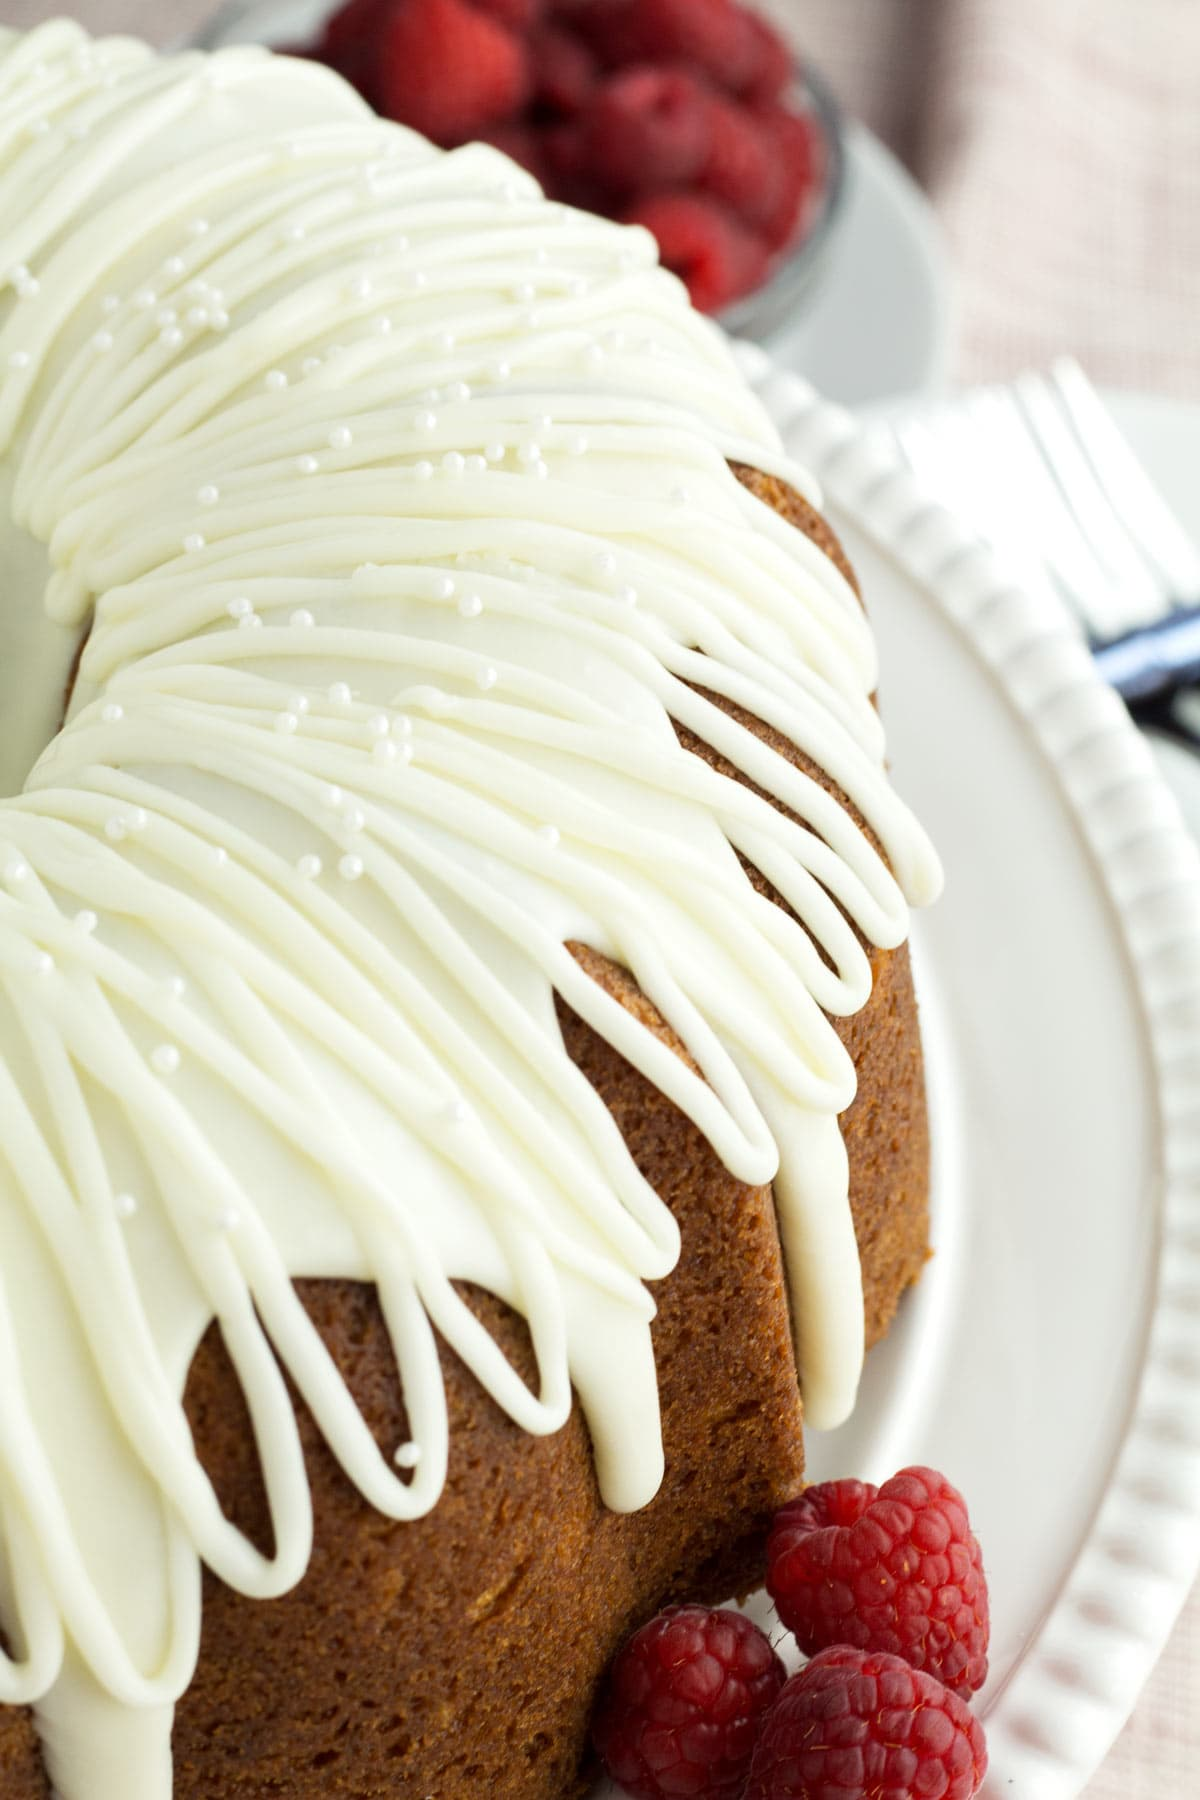 White chocolate frosting piped in loops on a Bundt cake.